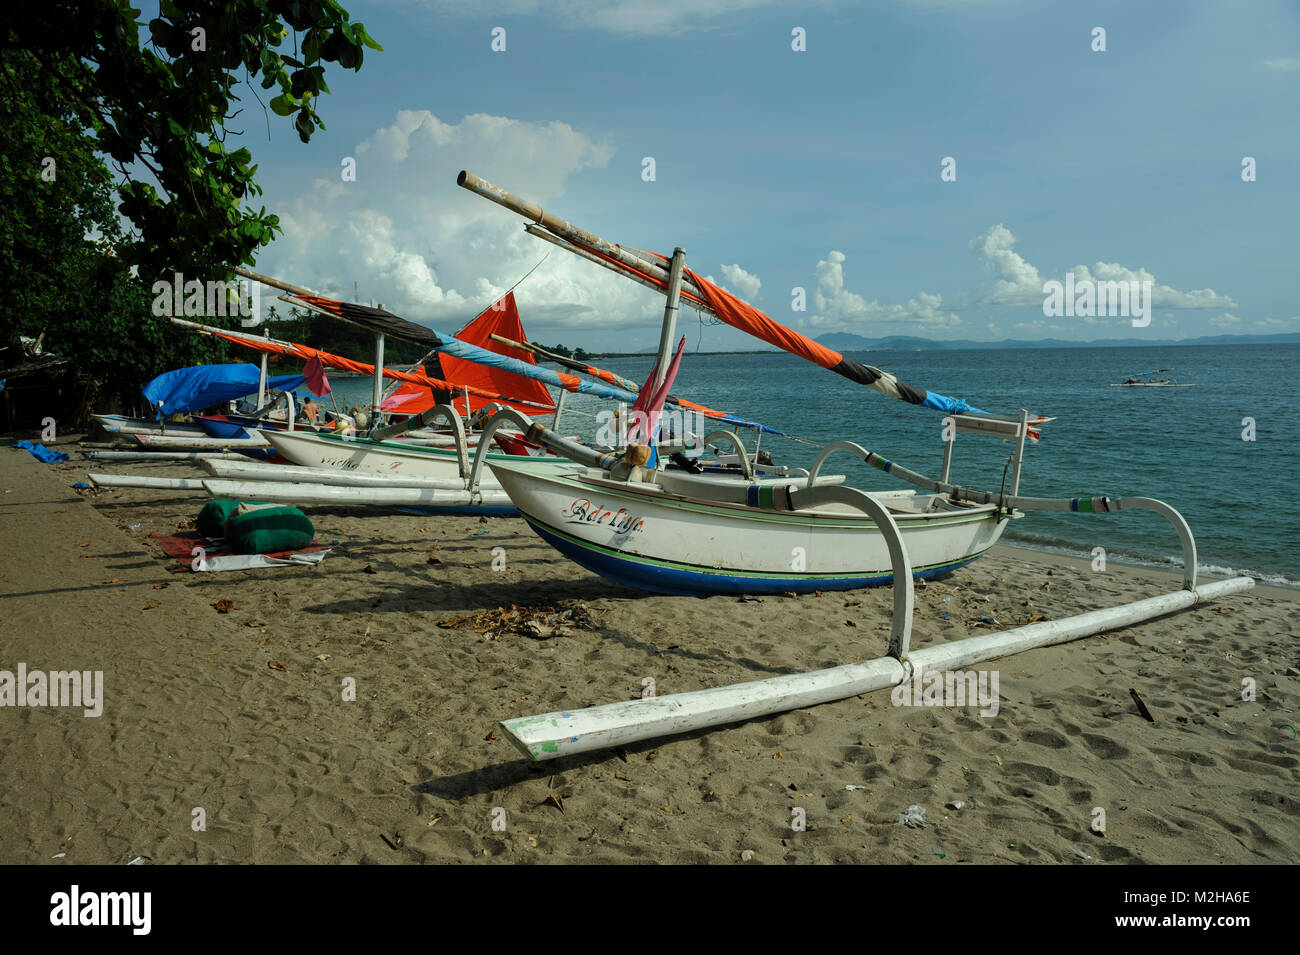 traditional fishing boats Jukung on beach in Lombok, Indonesia Stock Photo